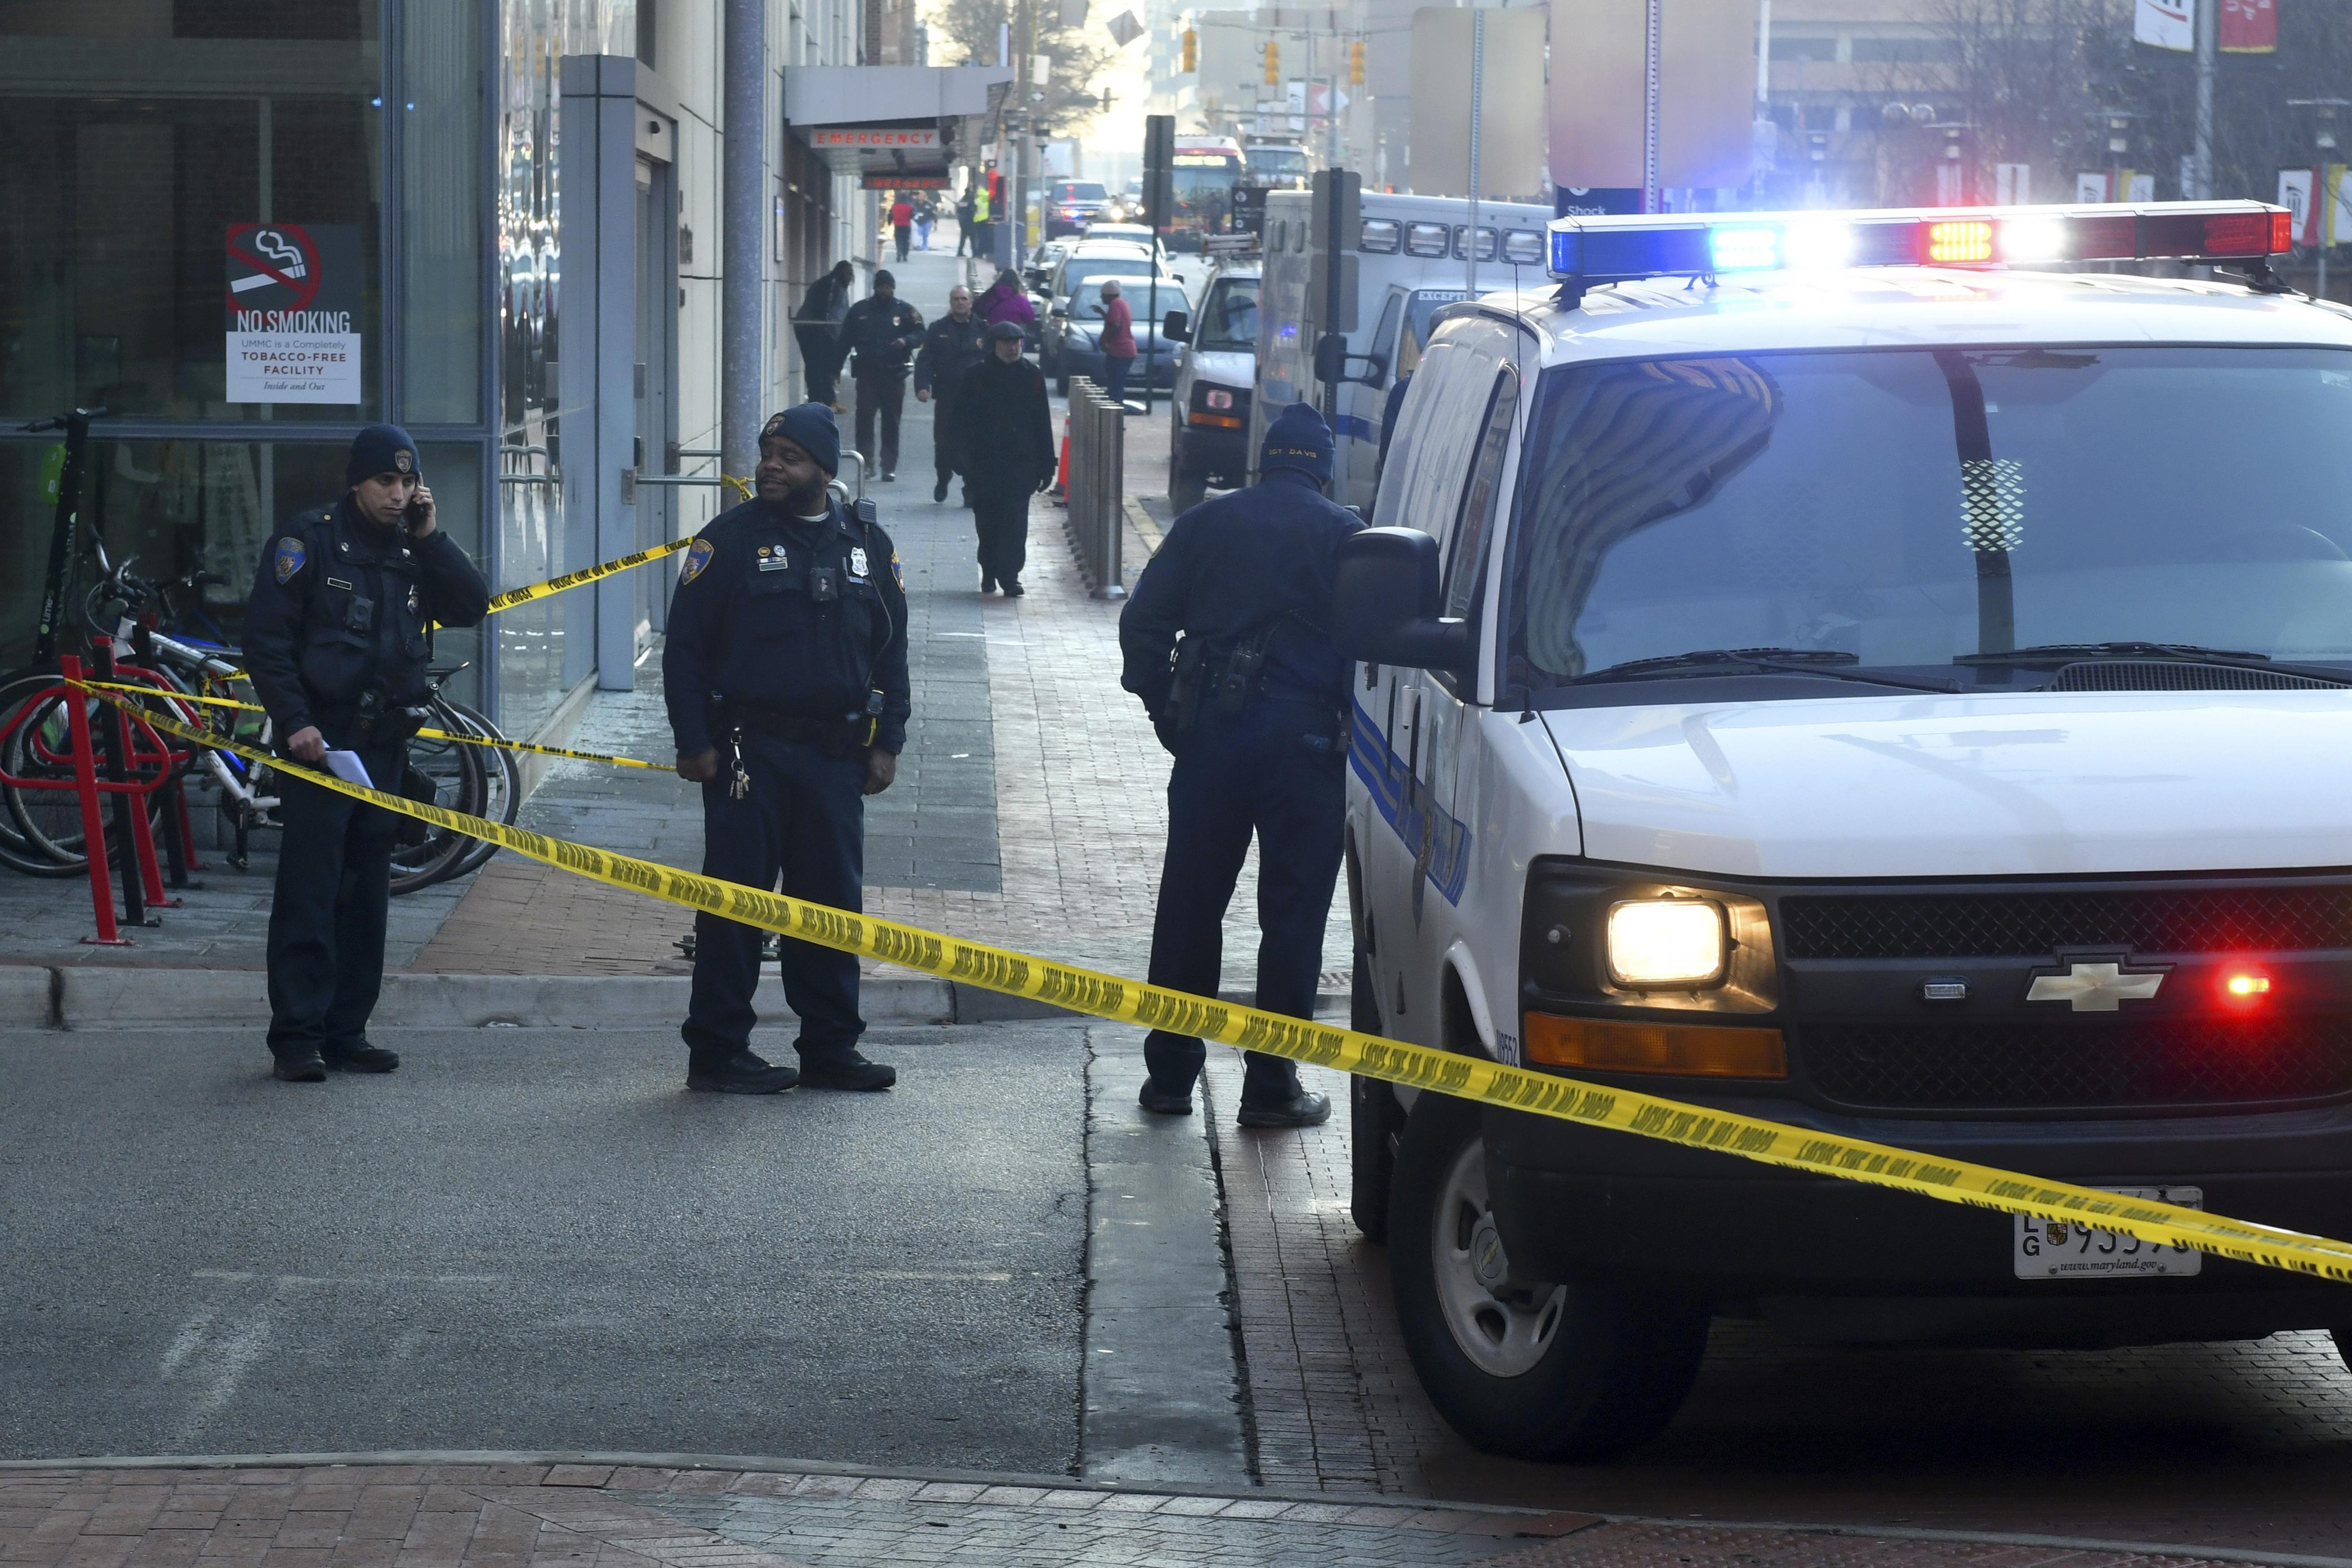 Police block a street in Baltimore after a shooting.